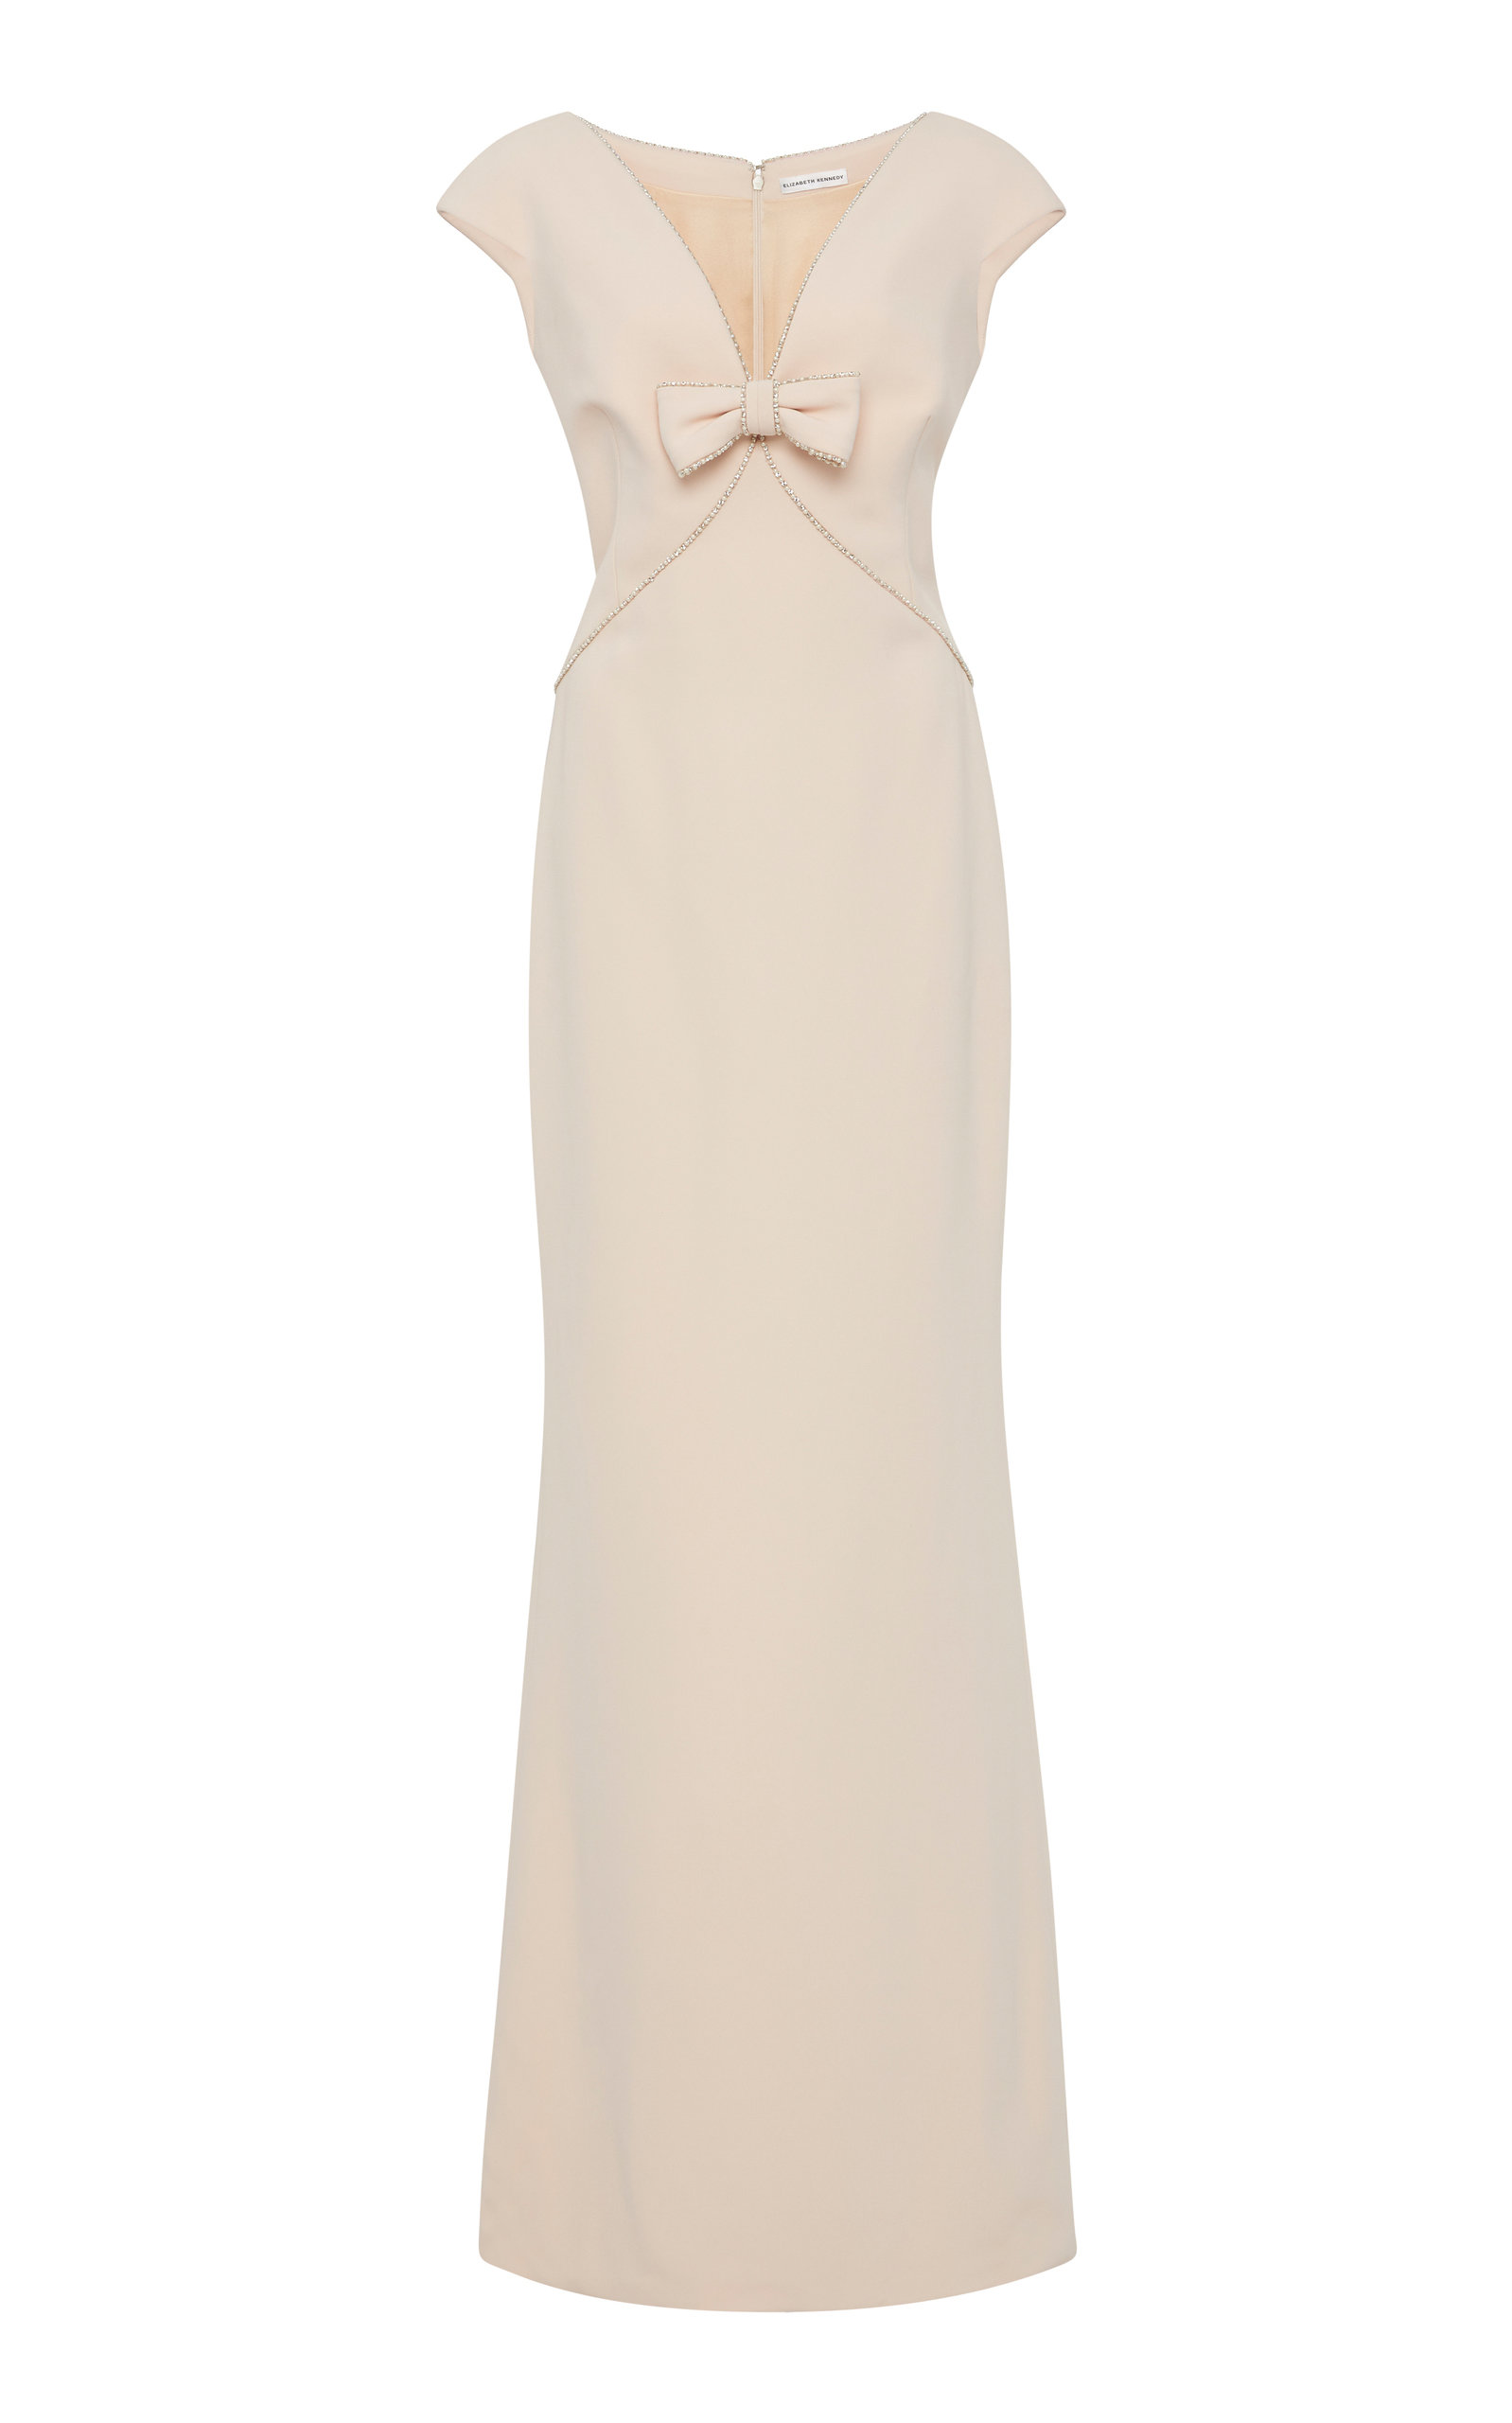 ELIZABETH KENNEDY Pearl-Trim Gown in Pink